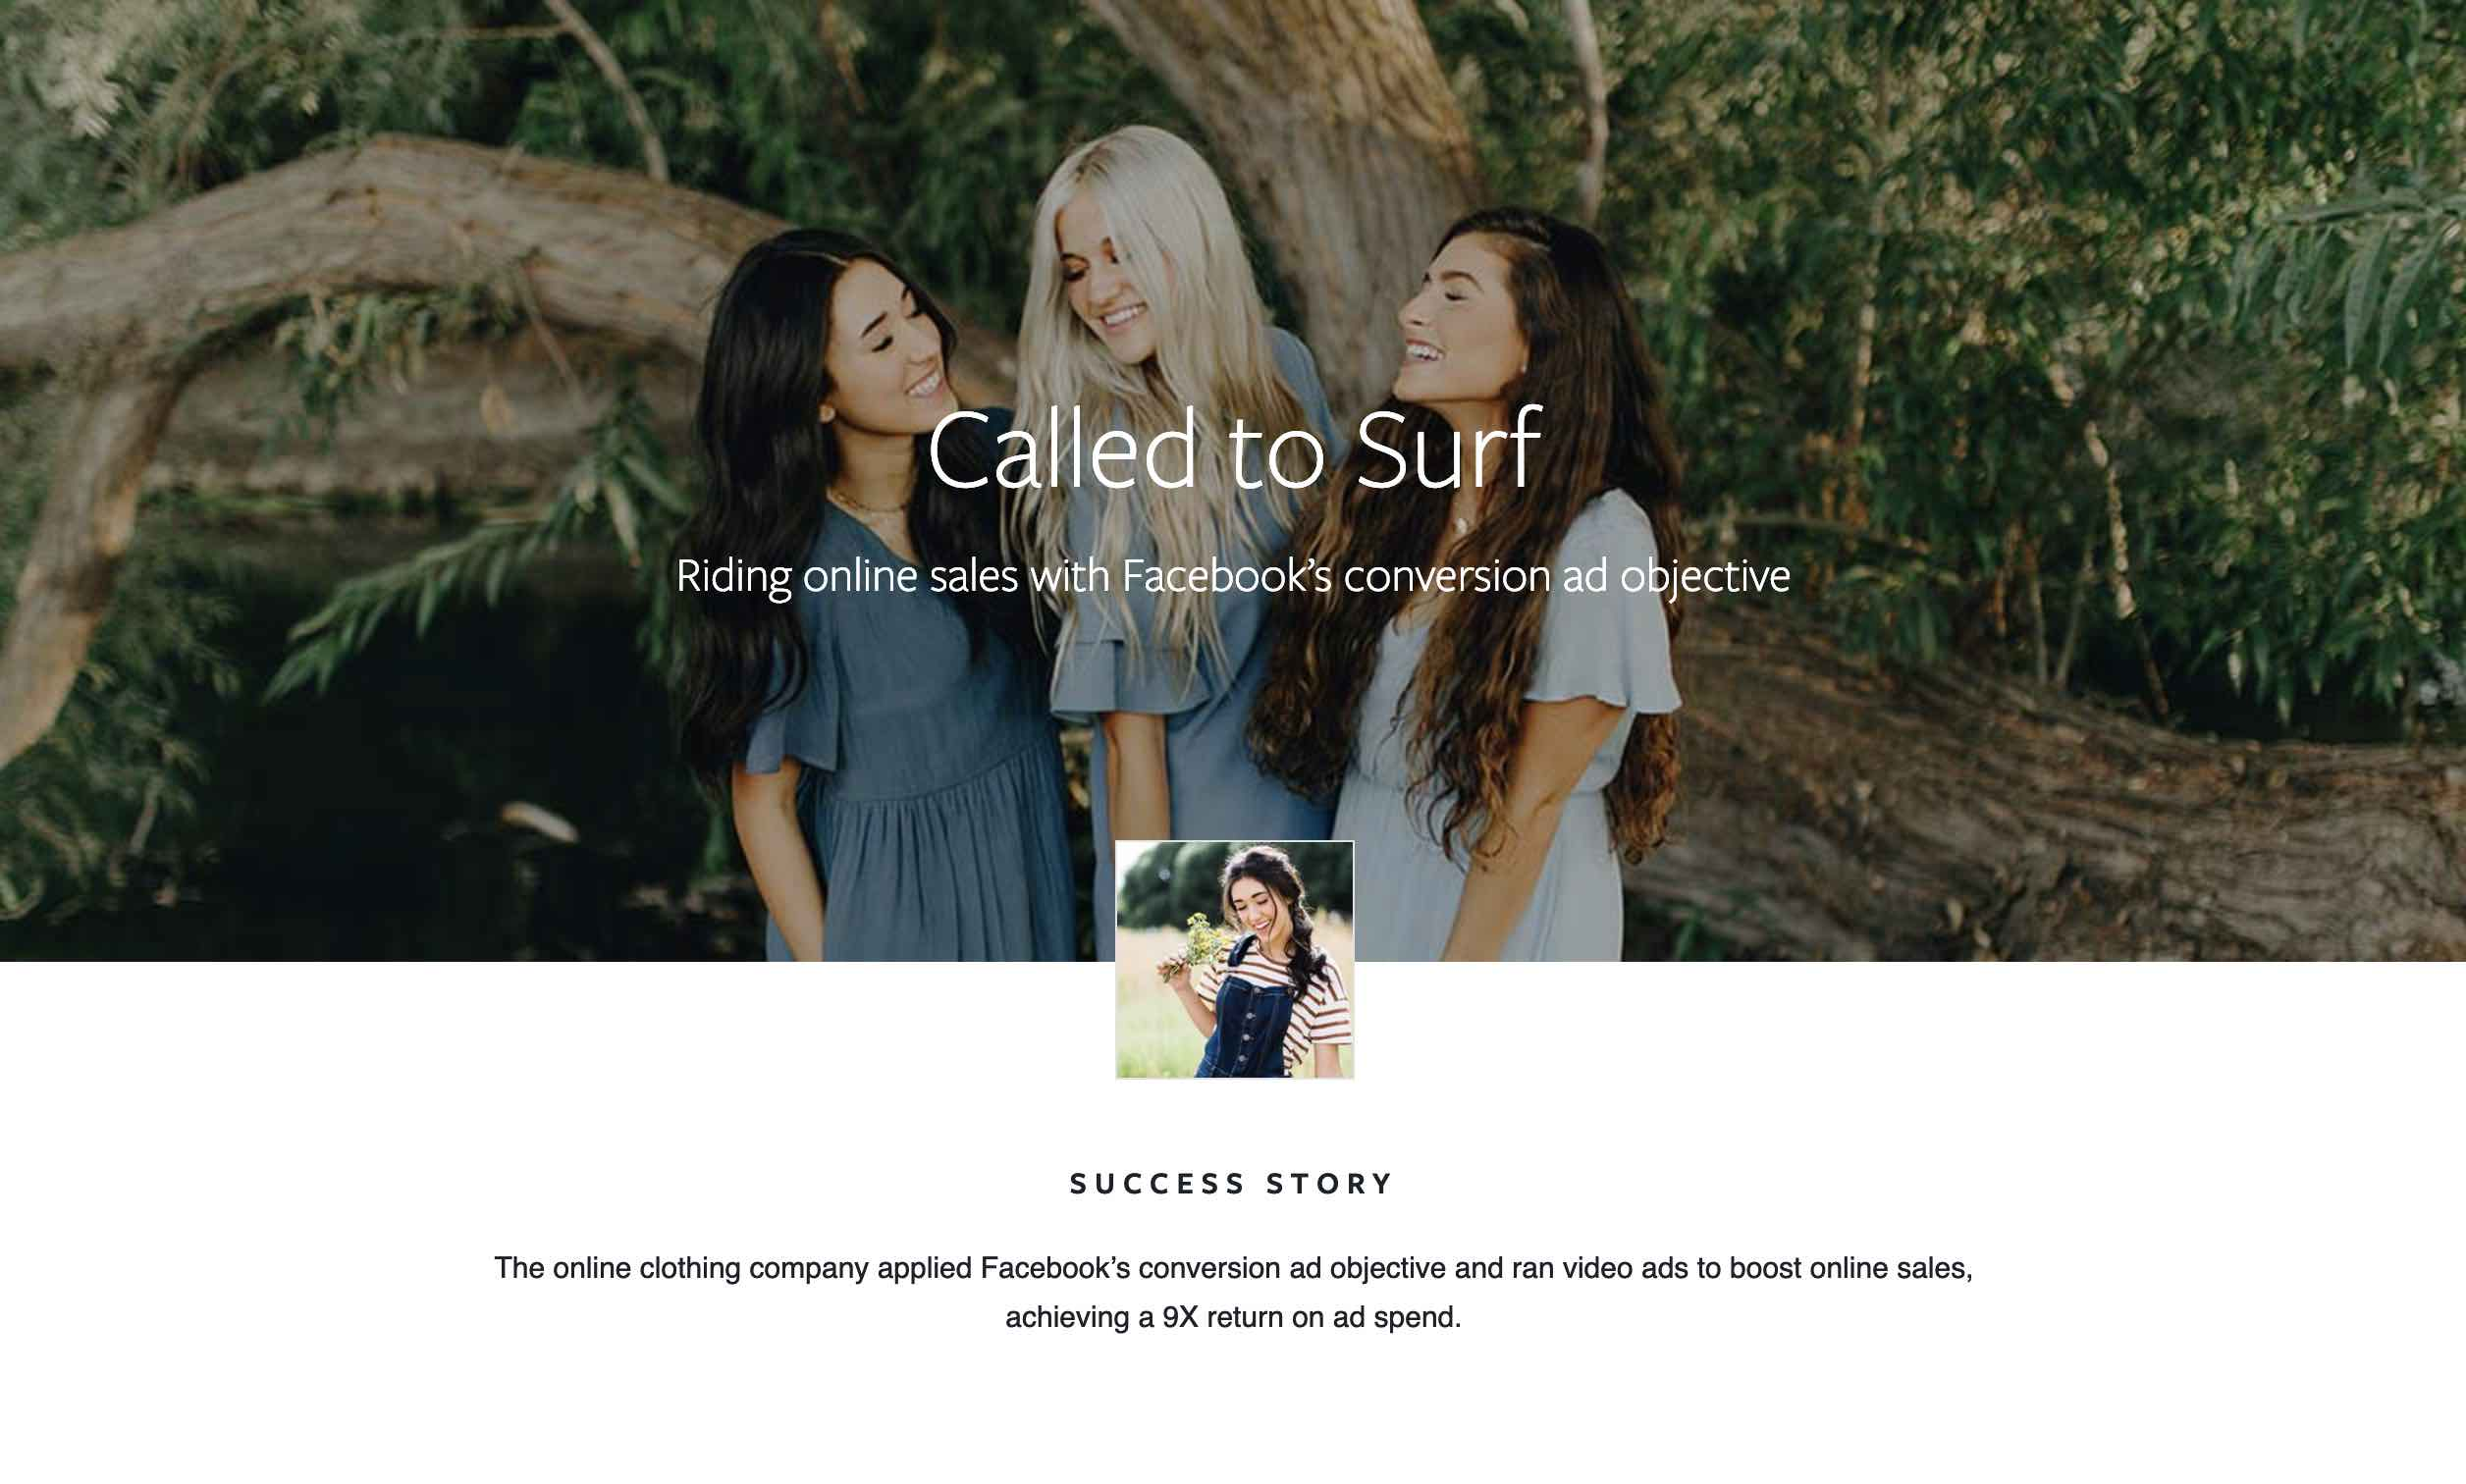 called-to-surf-case-study